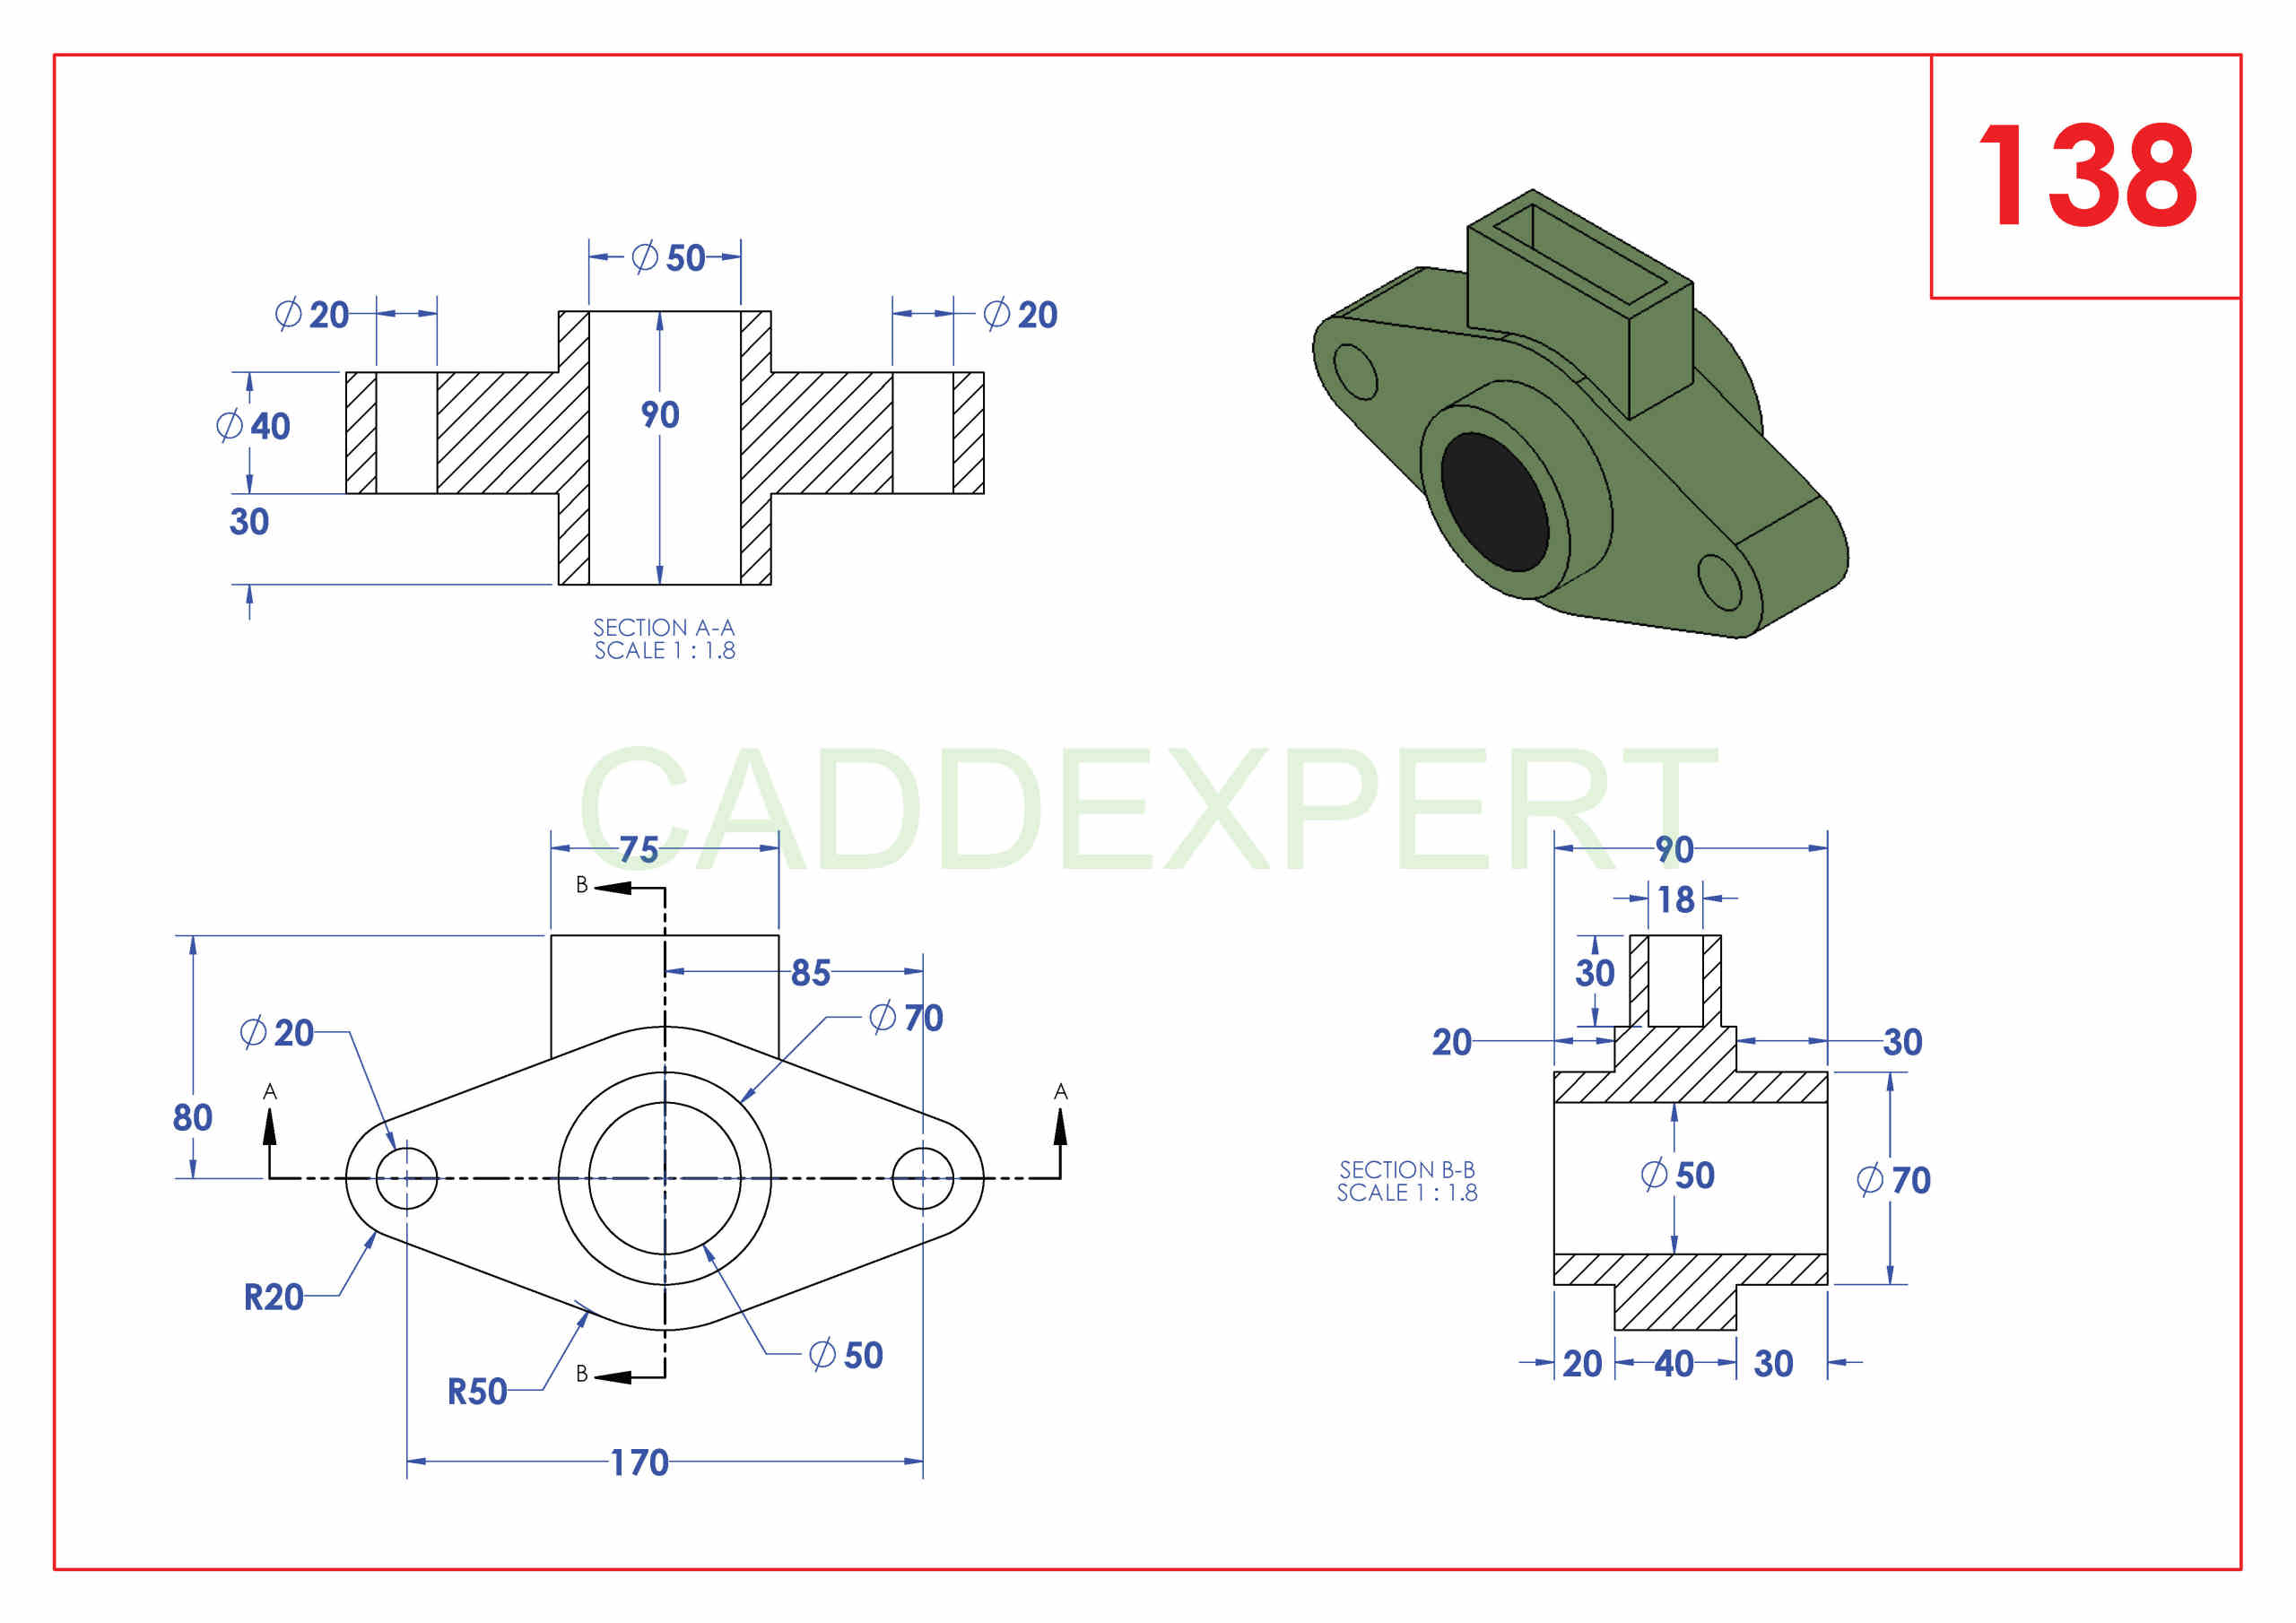 50 SOLIDWORKS EXERCISES PDF - 138